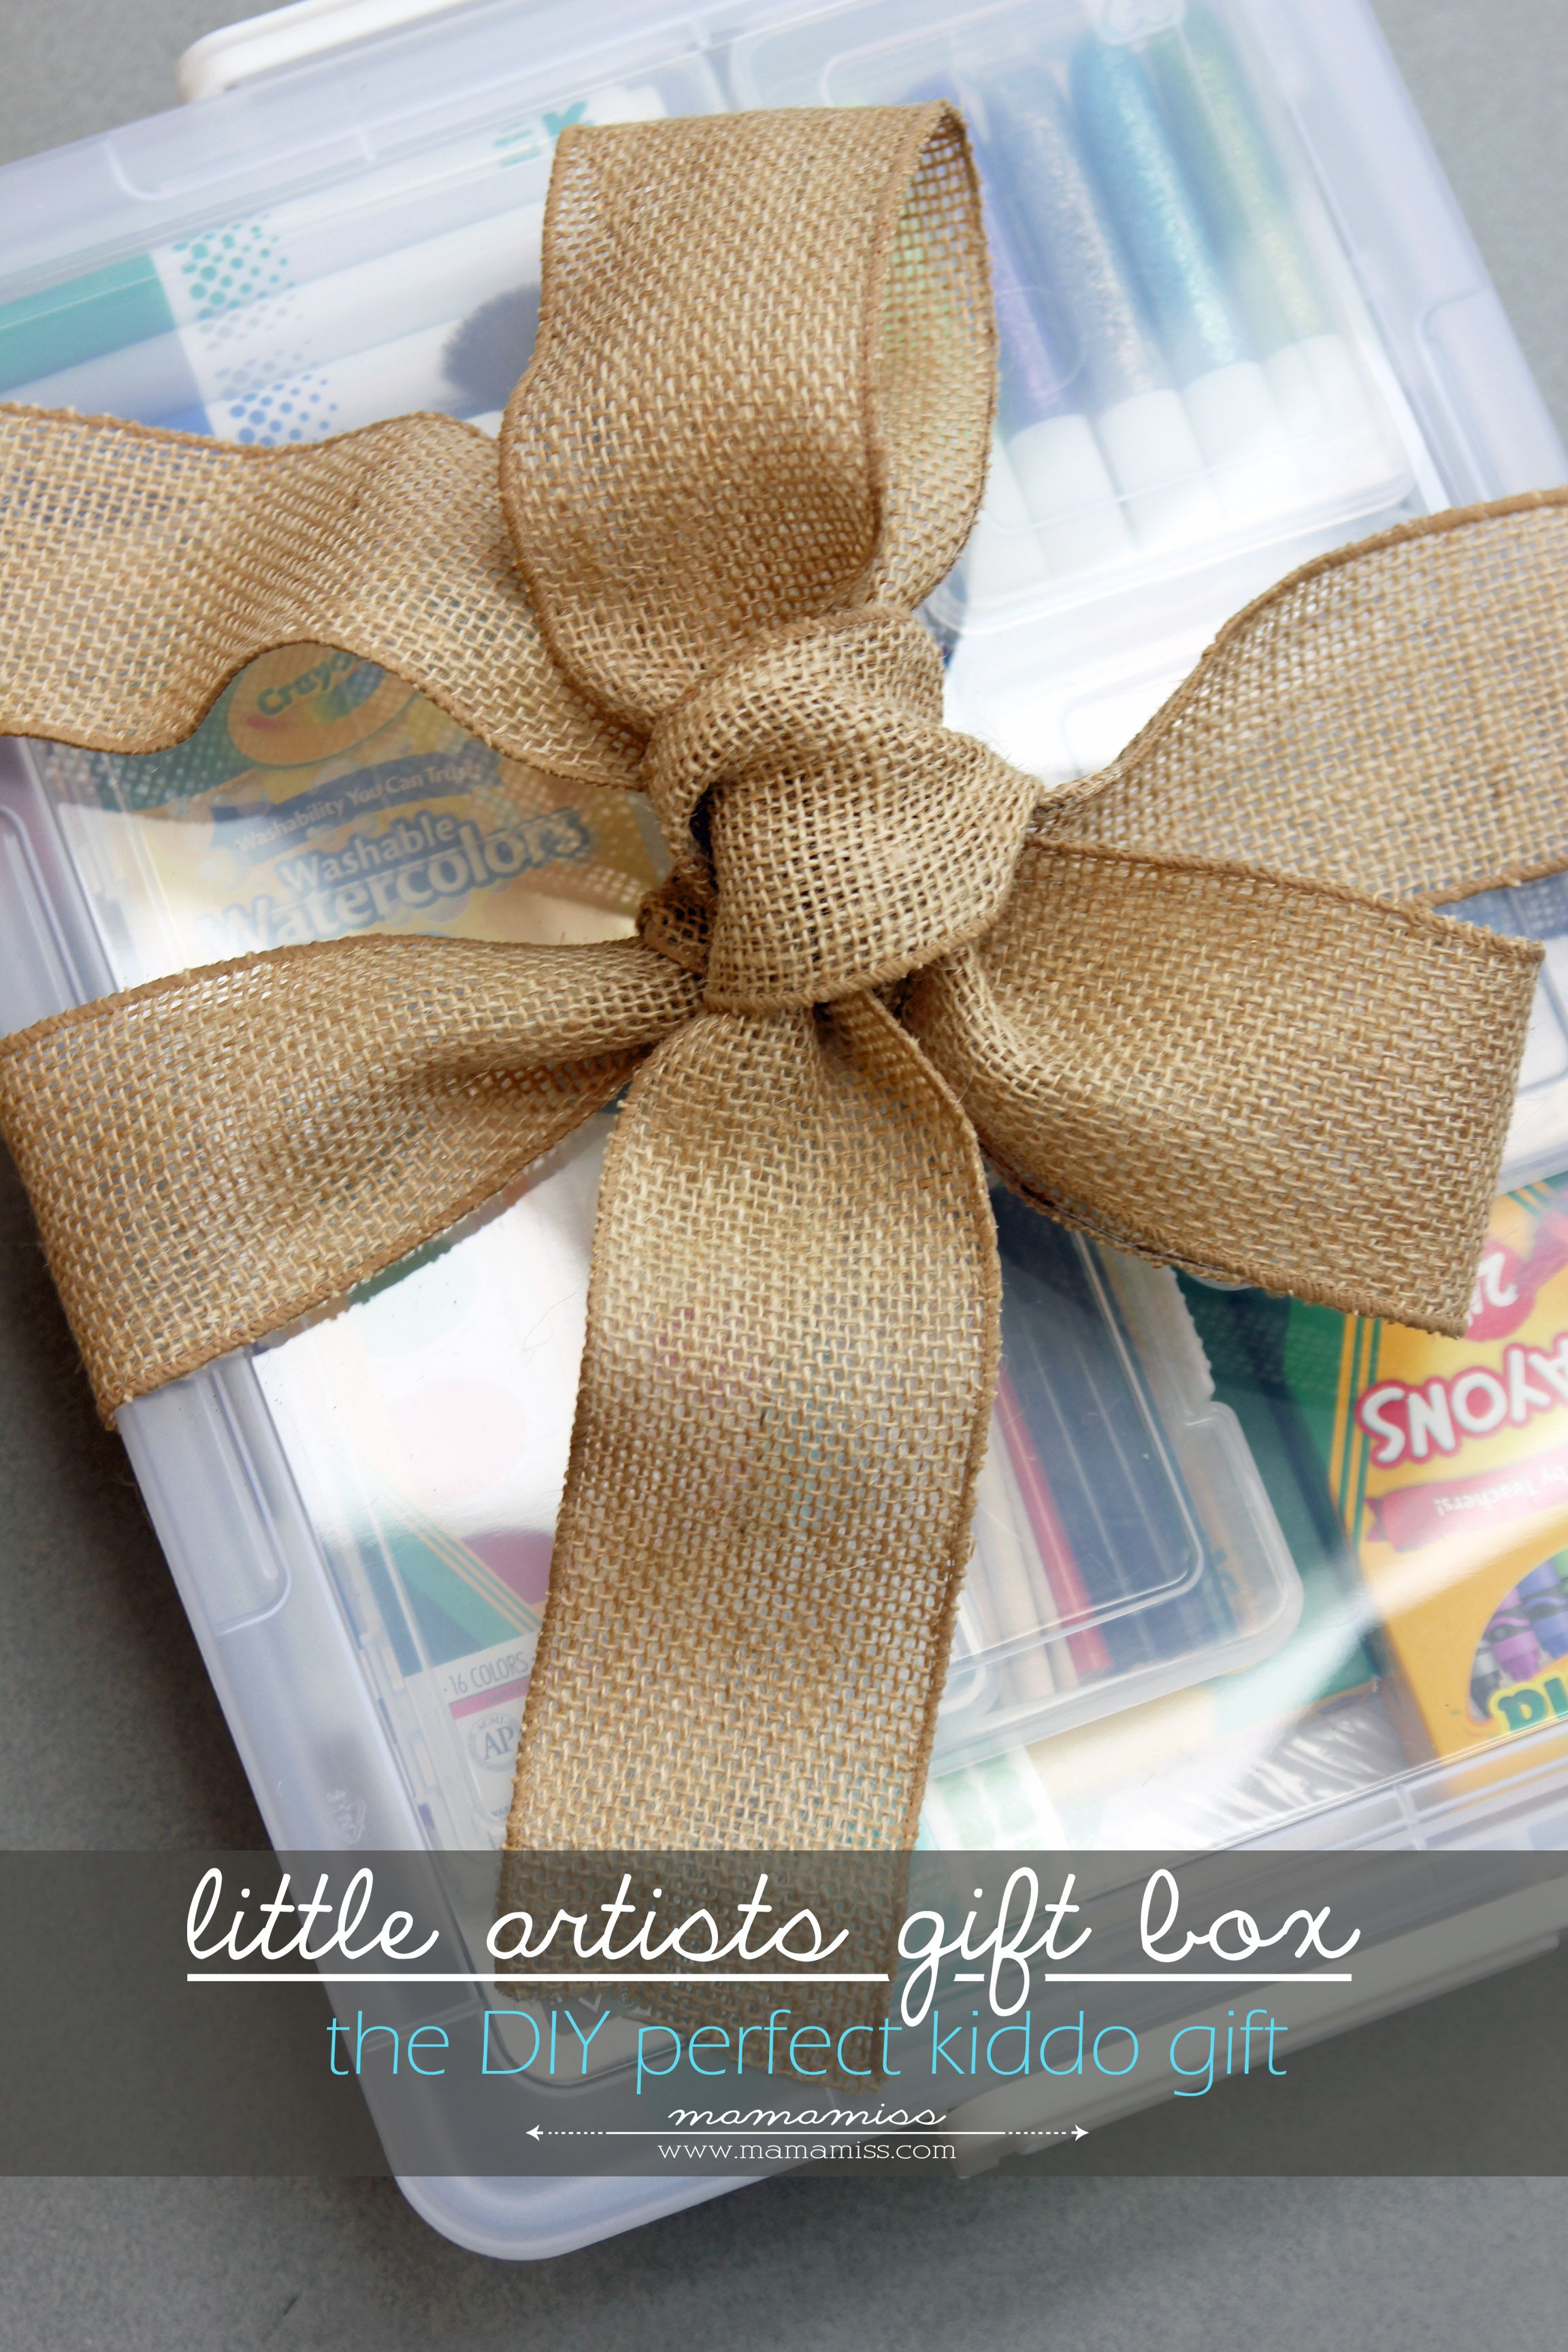 Männergeschenke Diy Diy Little Artists Gift Box Kid Blogger Network Activities